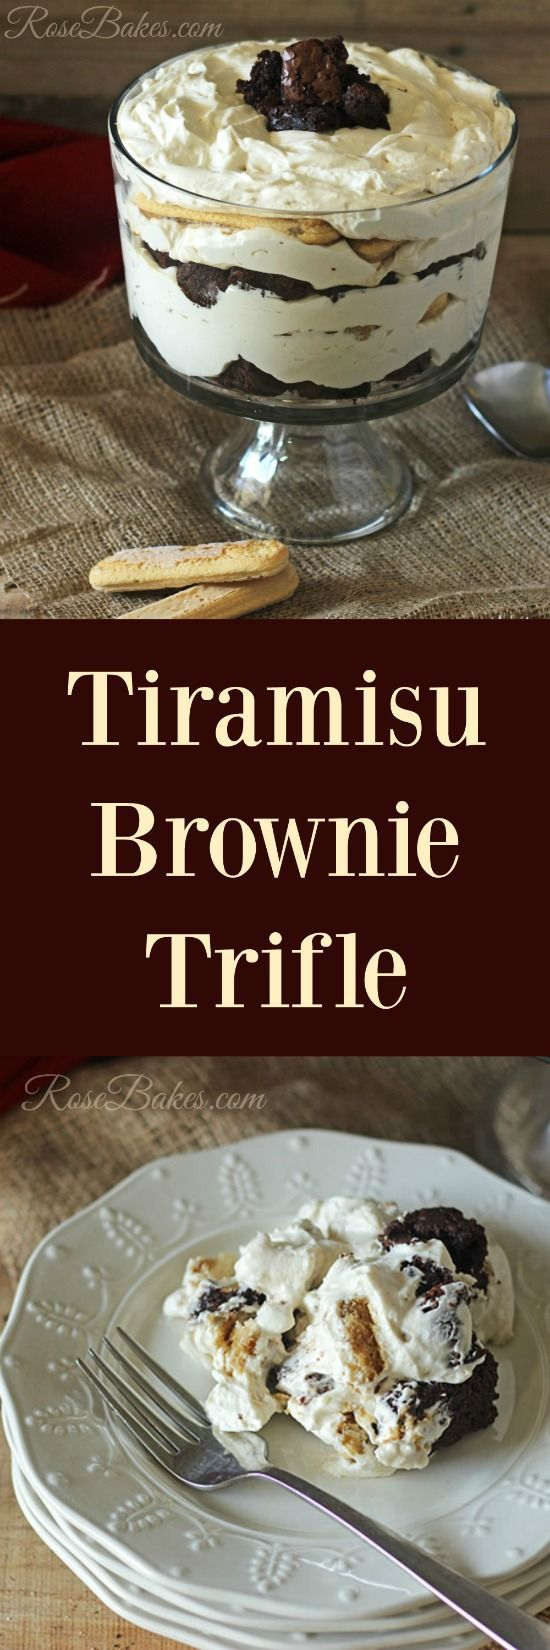 This Tiramisu Brownie Trifle has layers of Brownie, Whipped Cream Cheese Filling & Coffee-soaked Lady Fingers! Check out the recipe for a sweet treat sure to be a crowd pleaser!